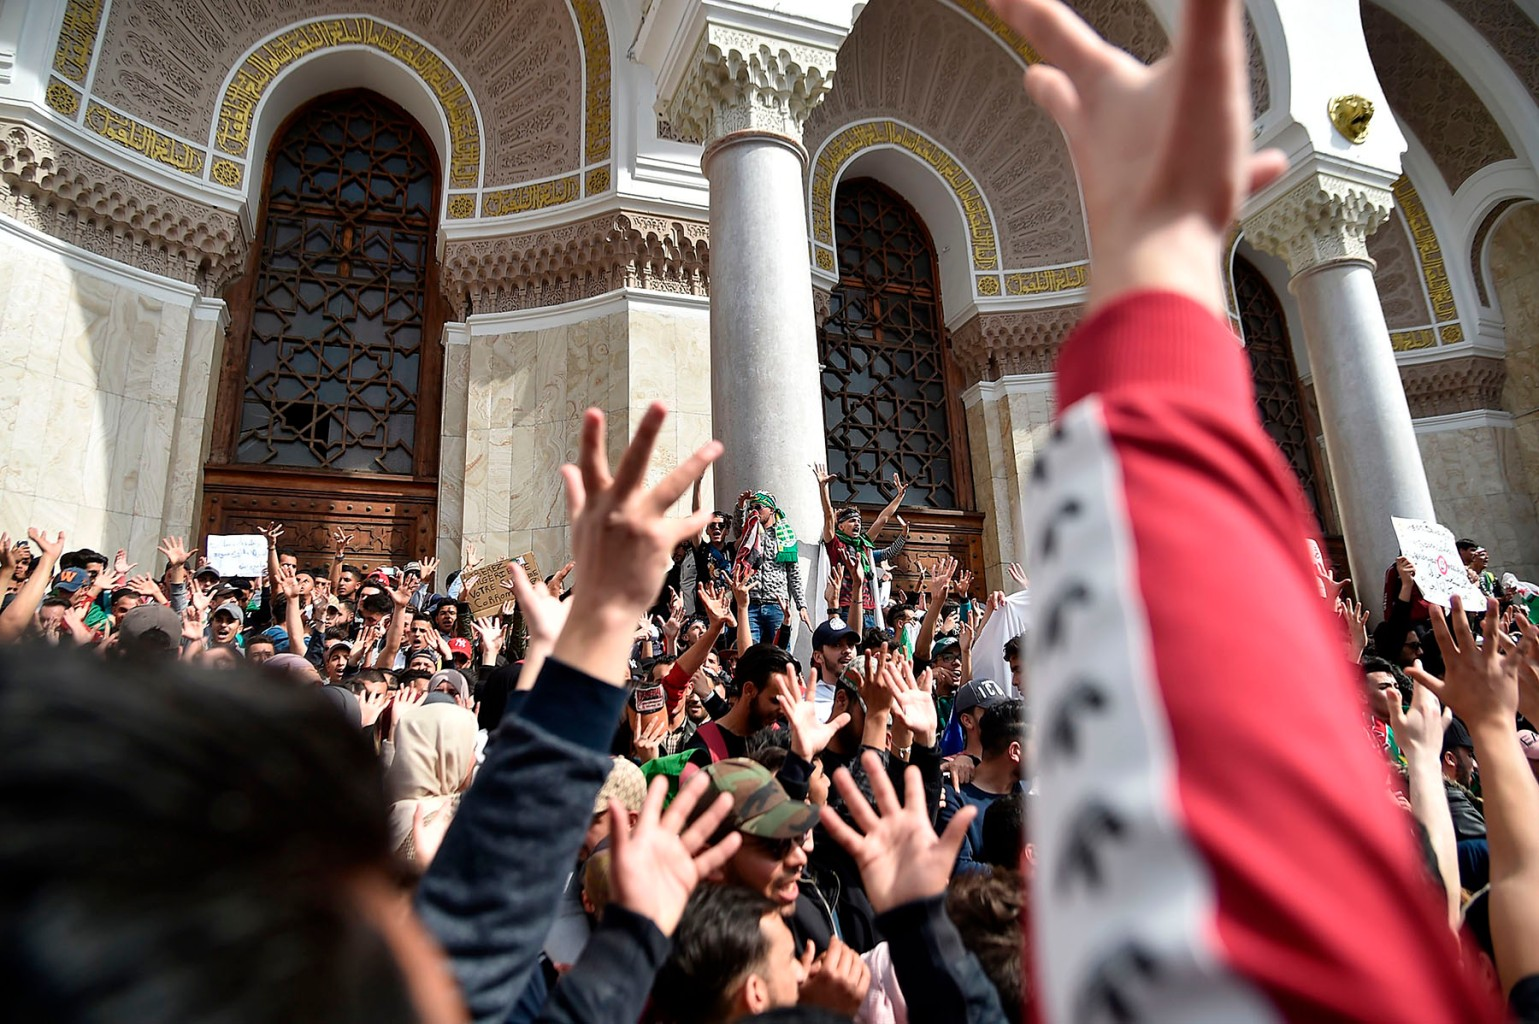 Algerian students demonstrate in the capital Algiers against their ailing president's bid for a fifth term on March 5. (Ryad Kramdi/AFP/Getty Images)